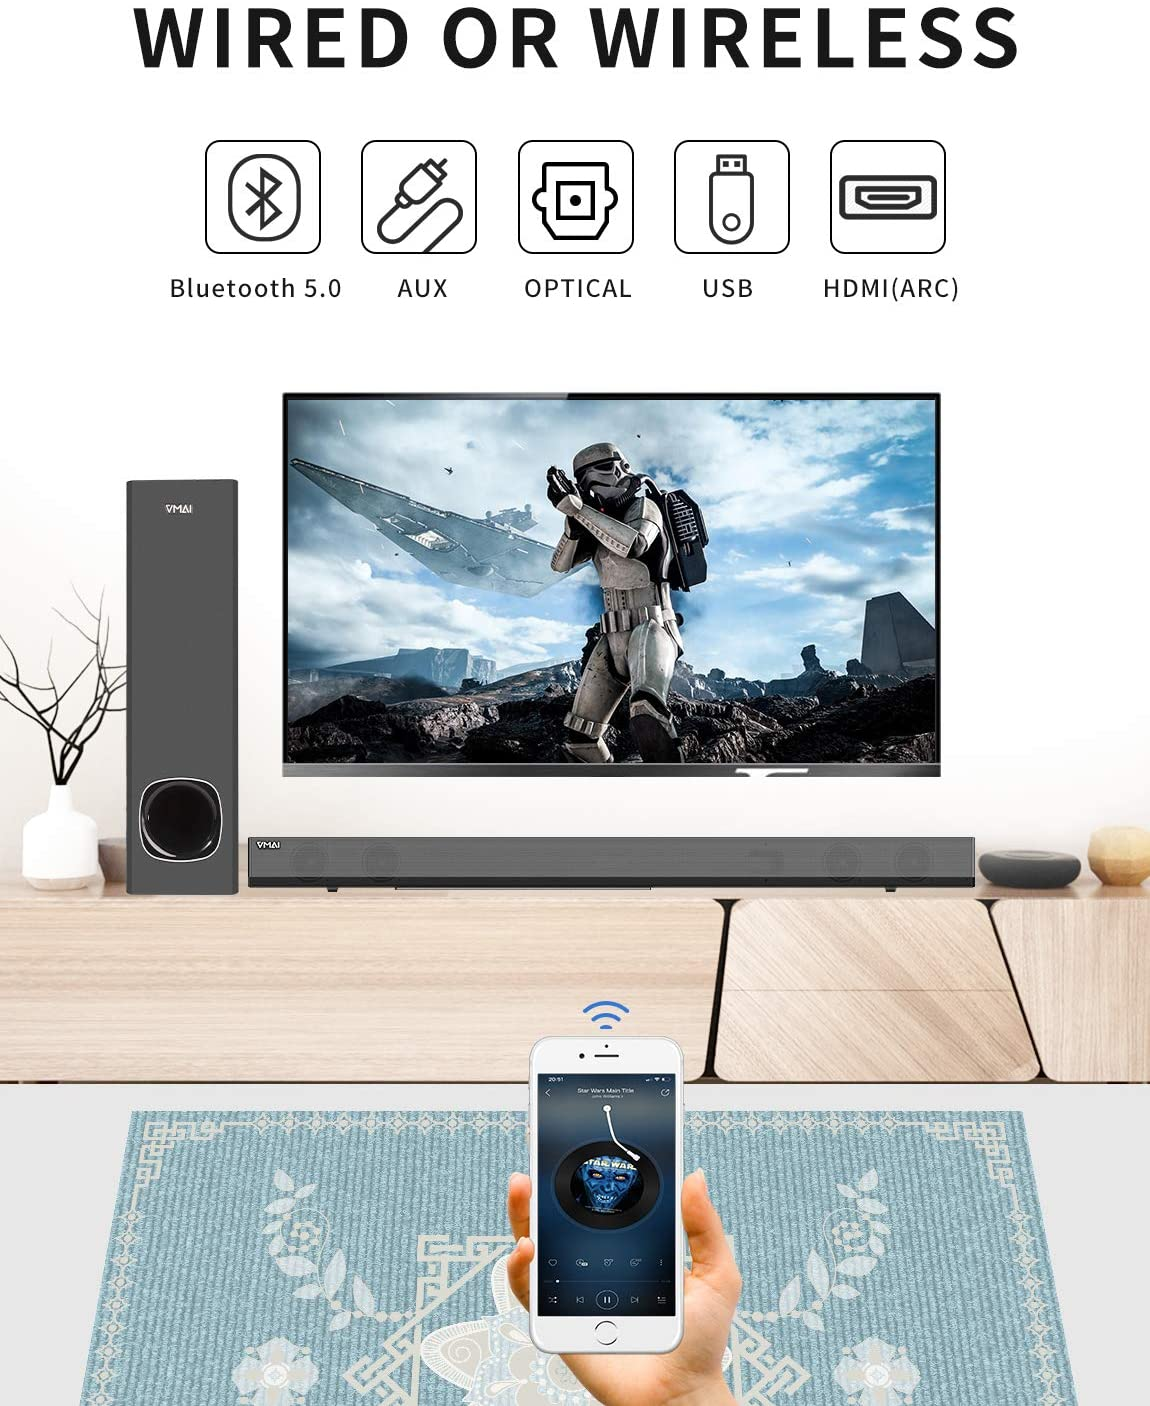 connectivity and compatibility of VMAI Soundbar with Subwoofer